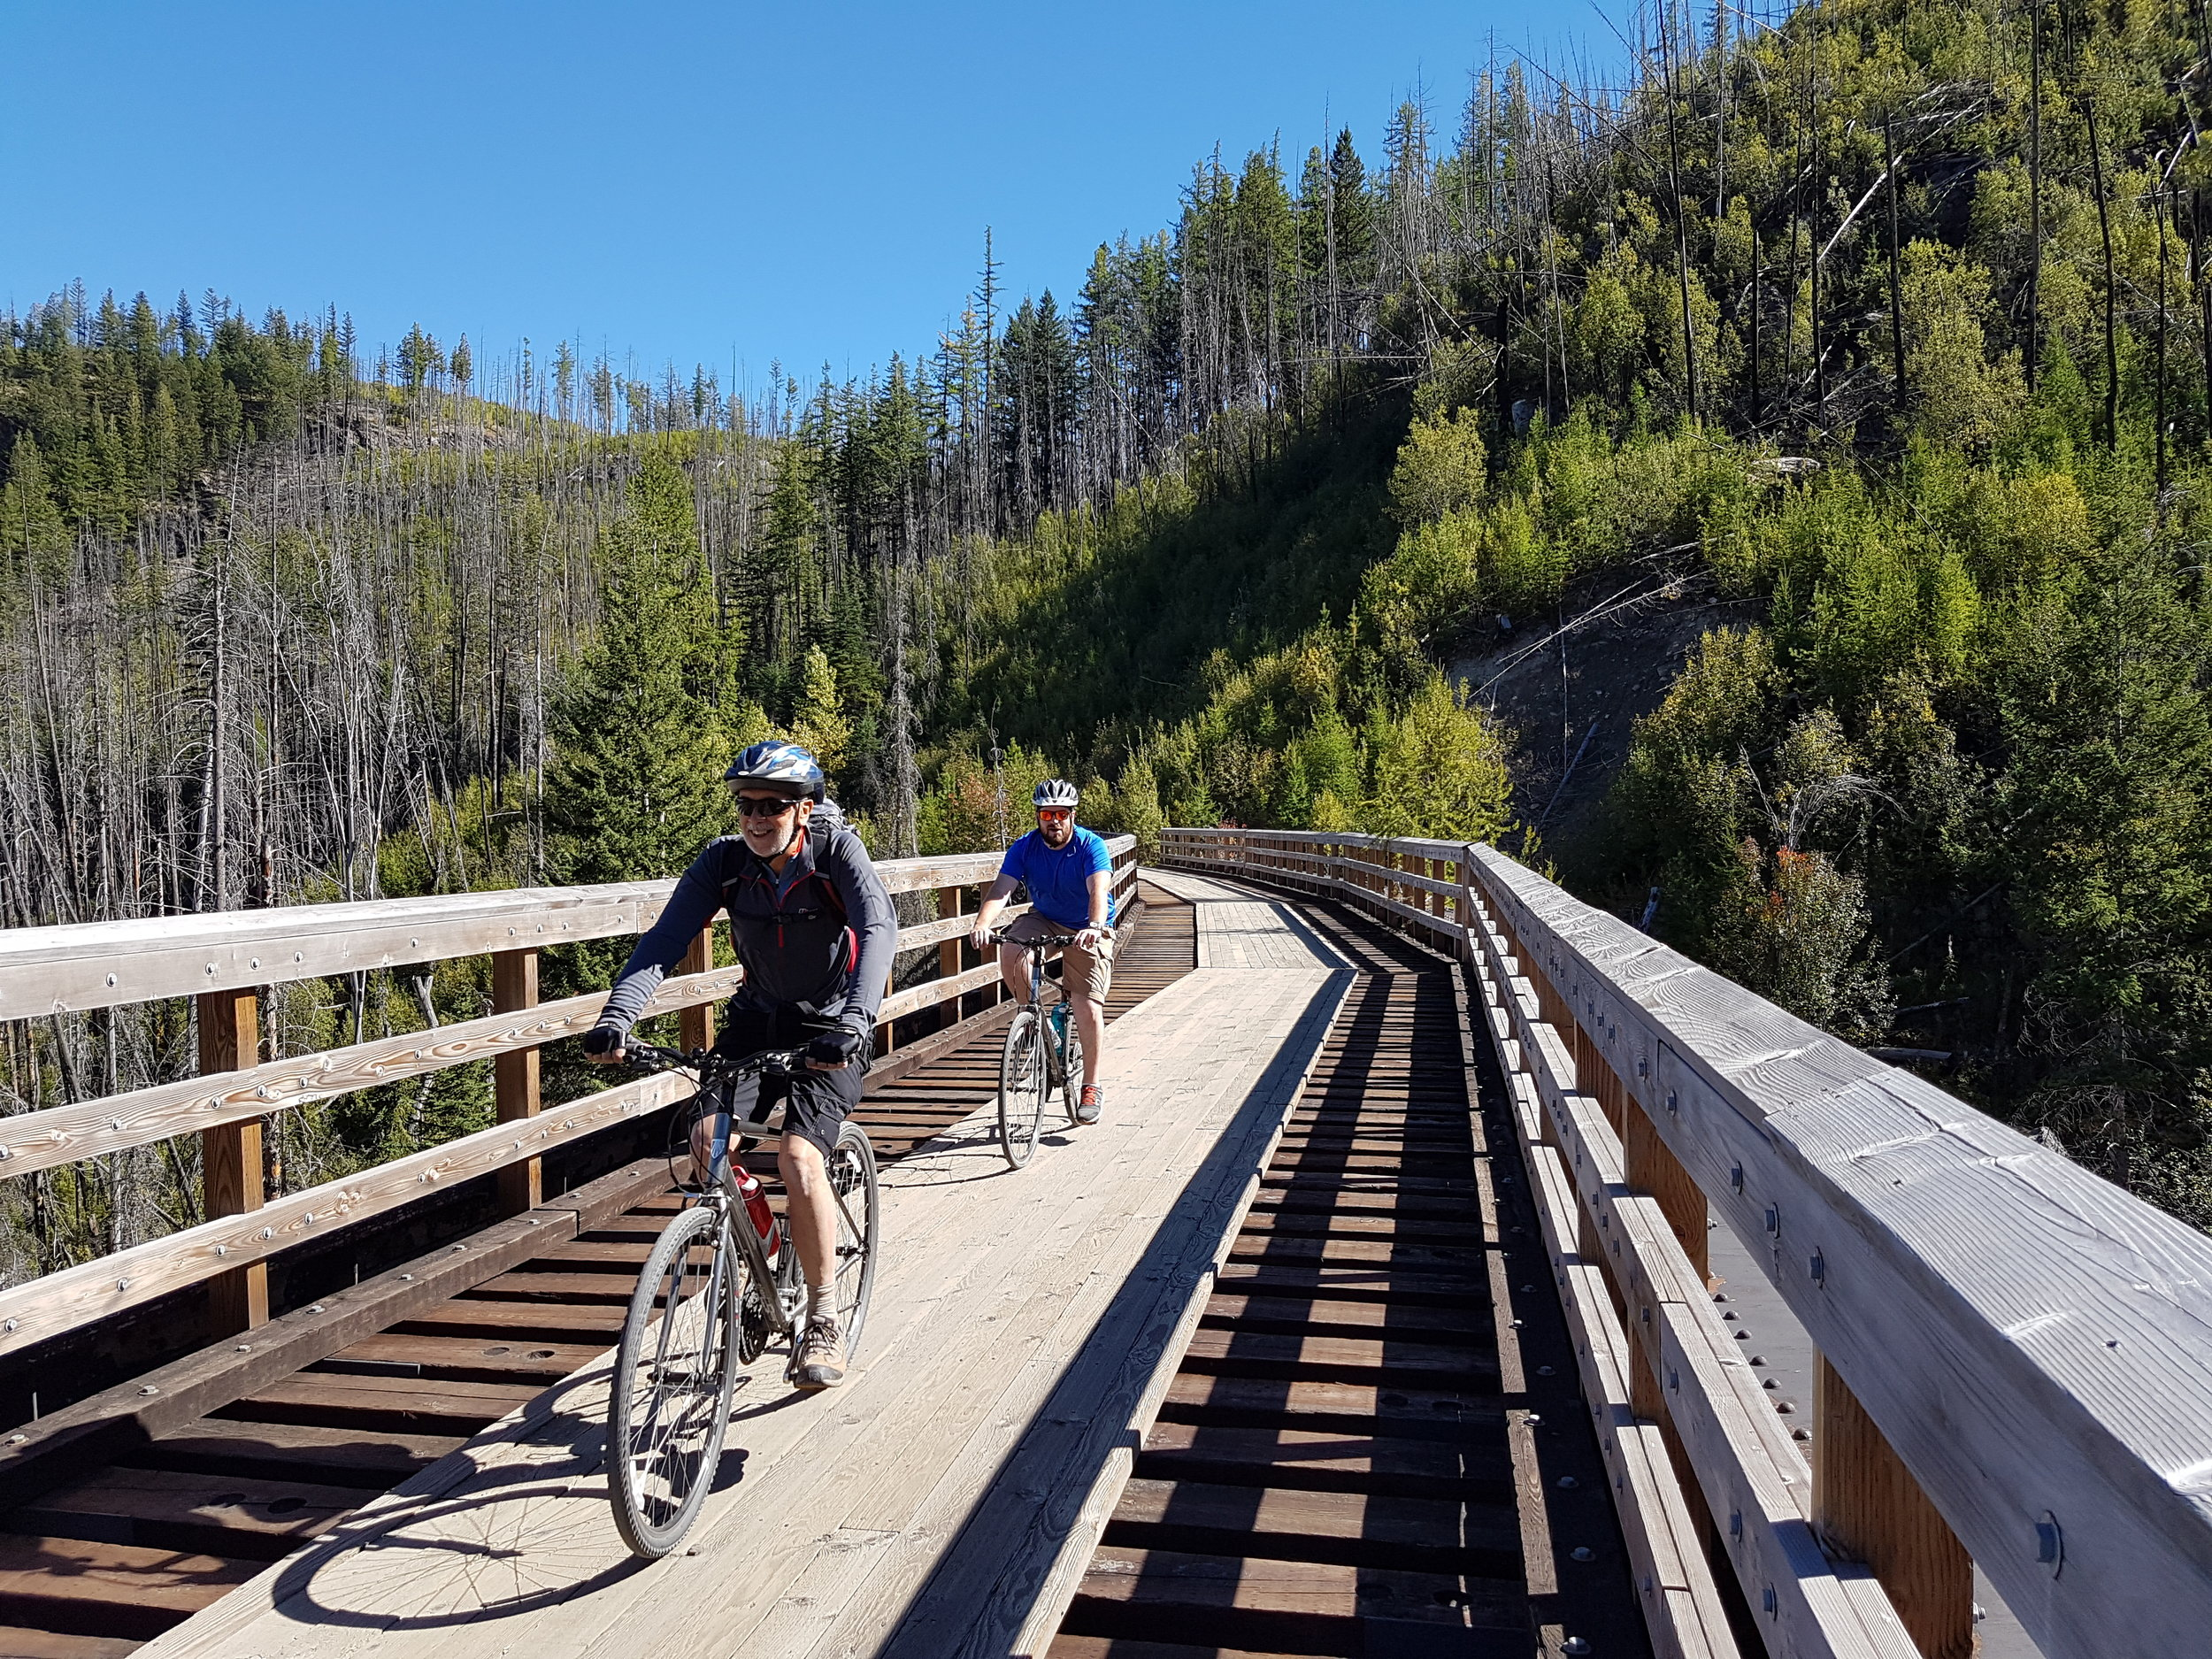 Discover the Kettle Valley Rail Trail in the Okanagan and ride over one of the 16 wooden trestles